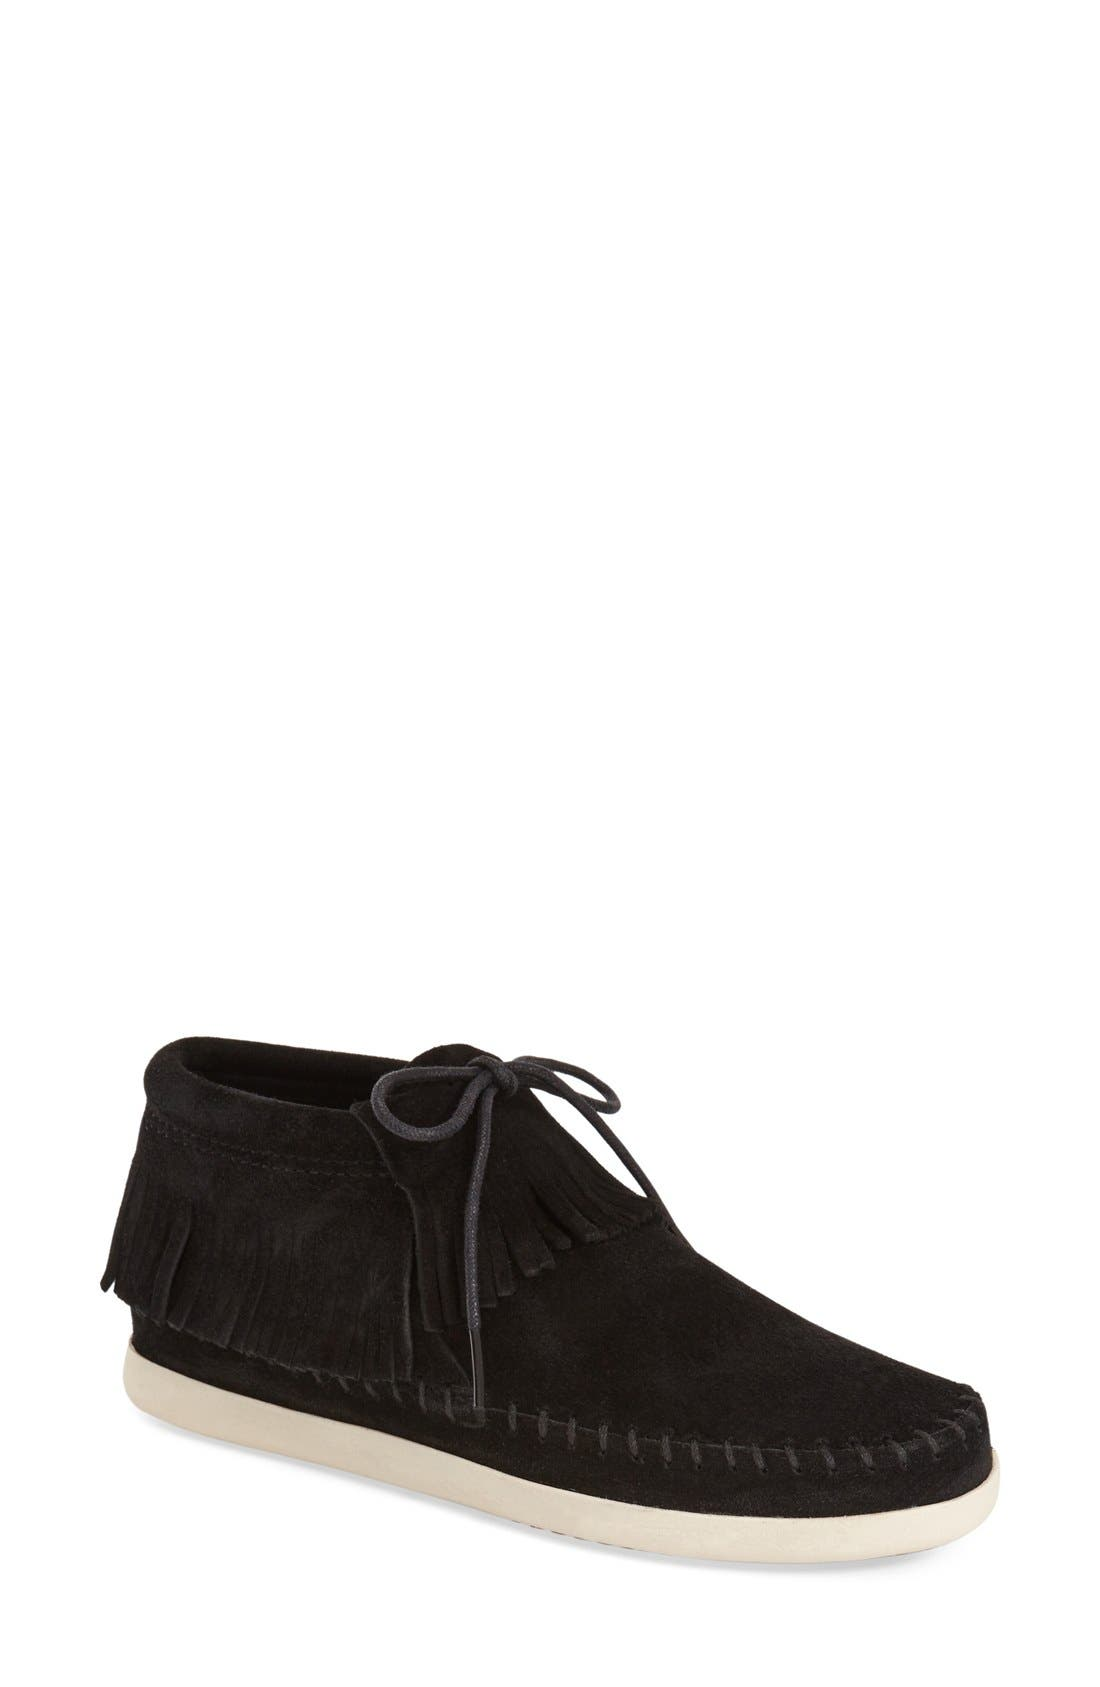 'Venice' Fringe Moccasin Bootie,                         Main,                         color, 001